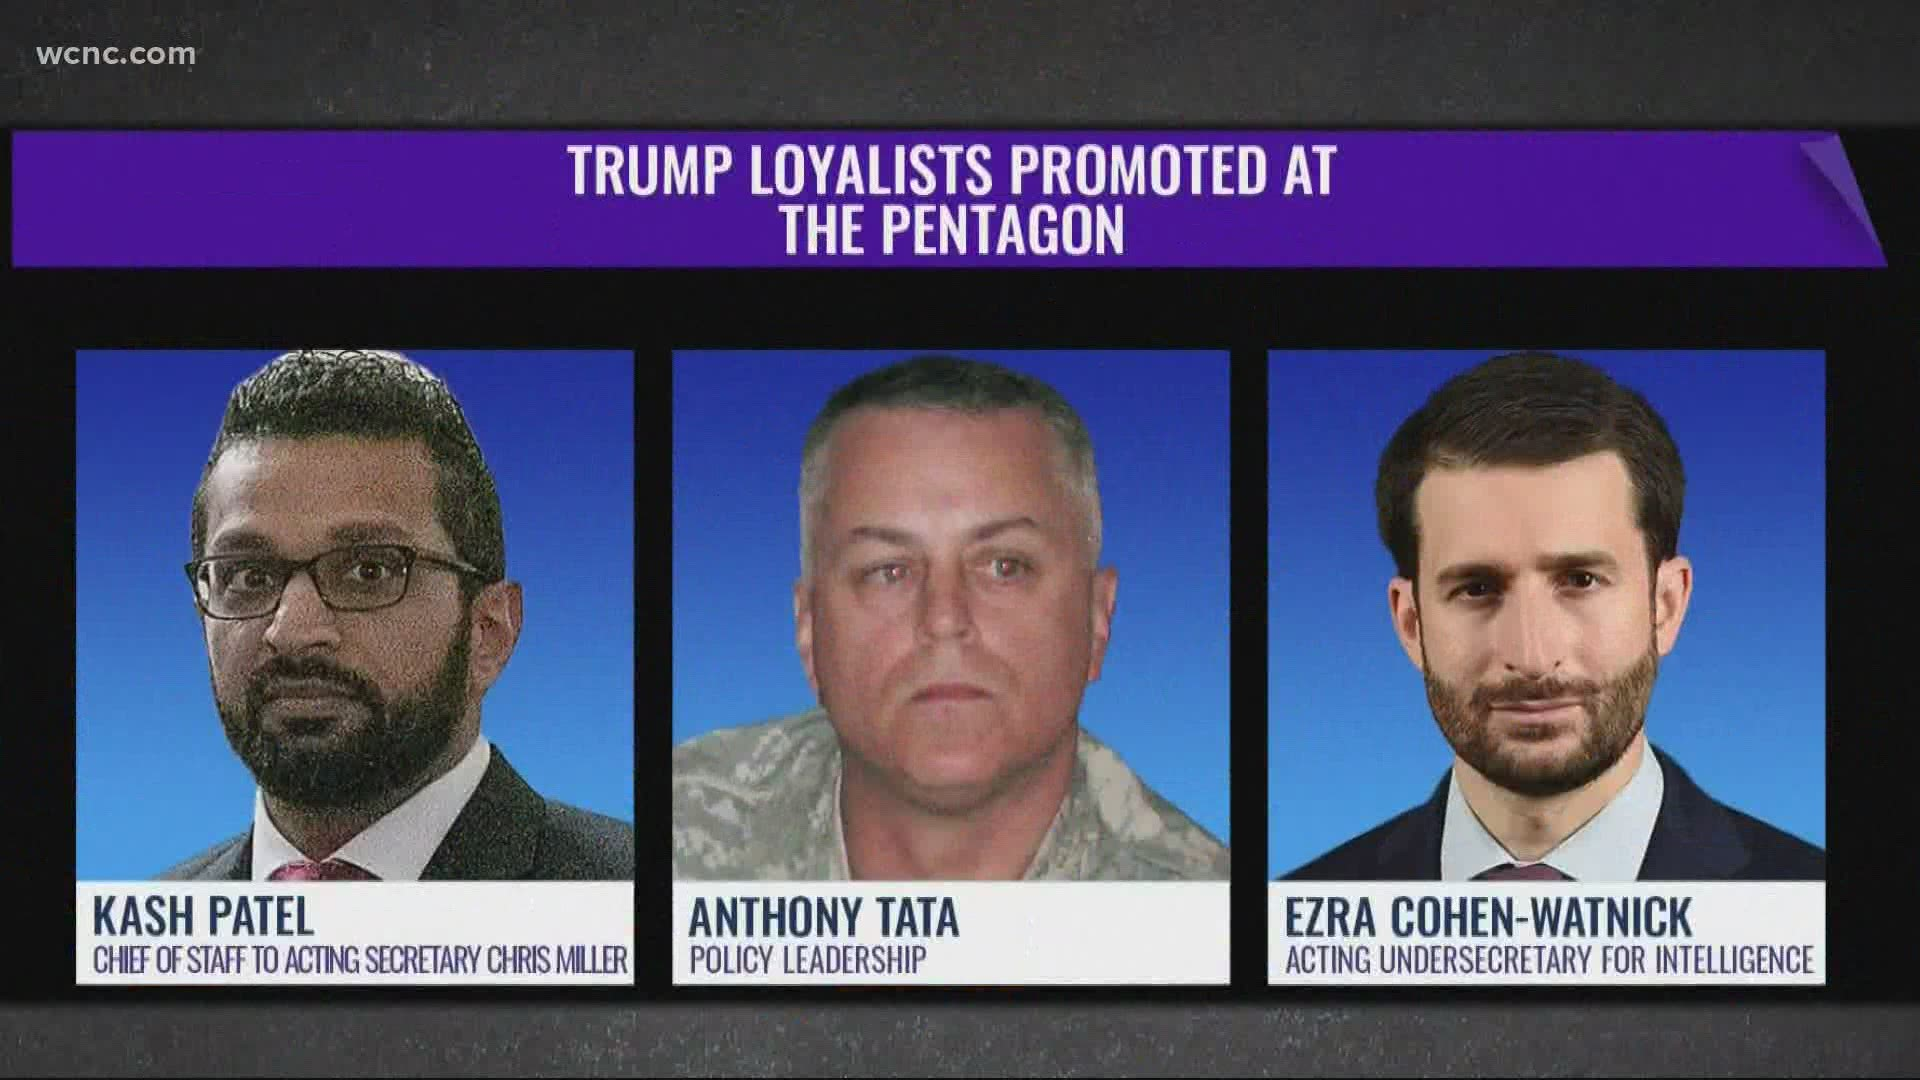 Military advisors concerned over national security after Trump hires loyalists at Pentagon | wcnc.com